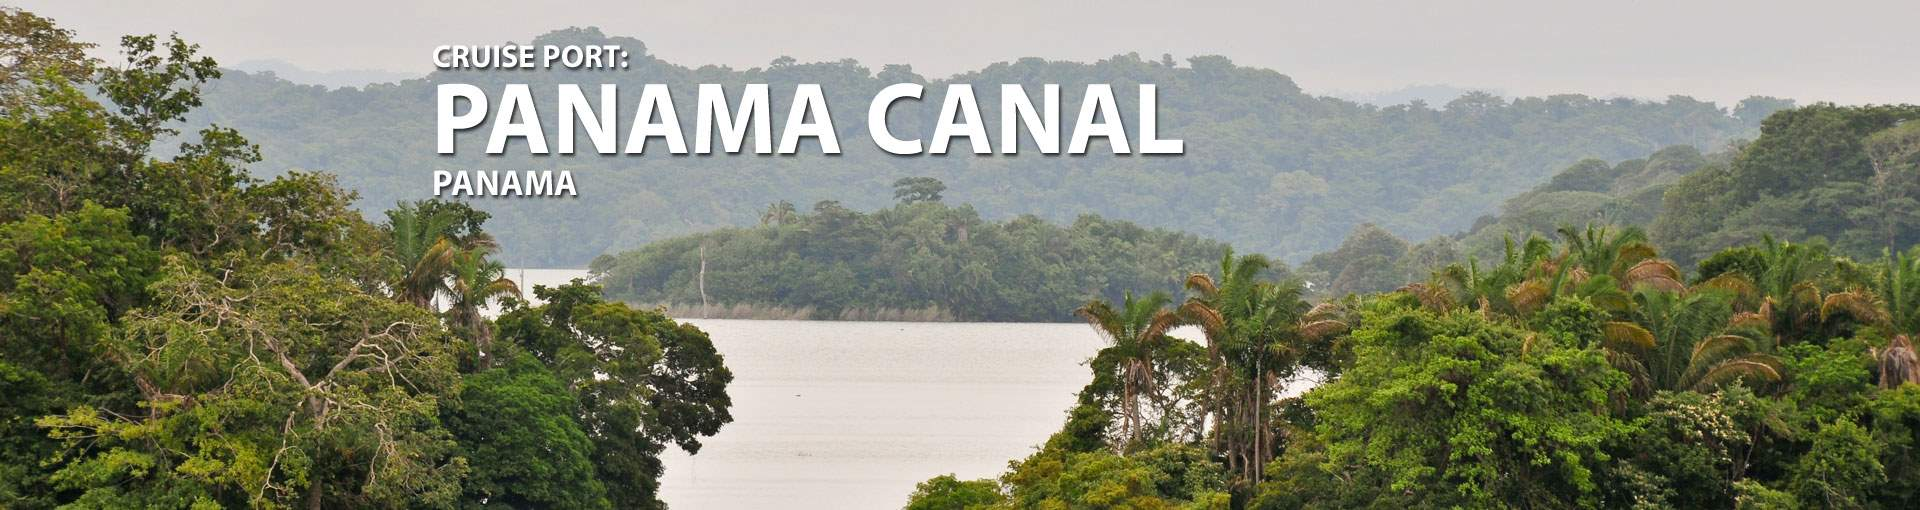 Cruises to Panama Canal, Gatun Lake, Panama